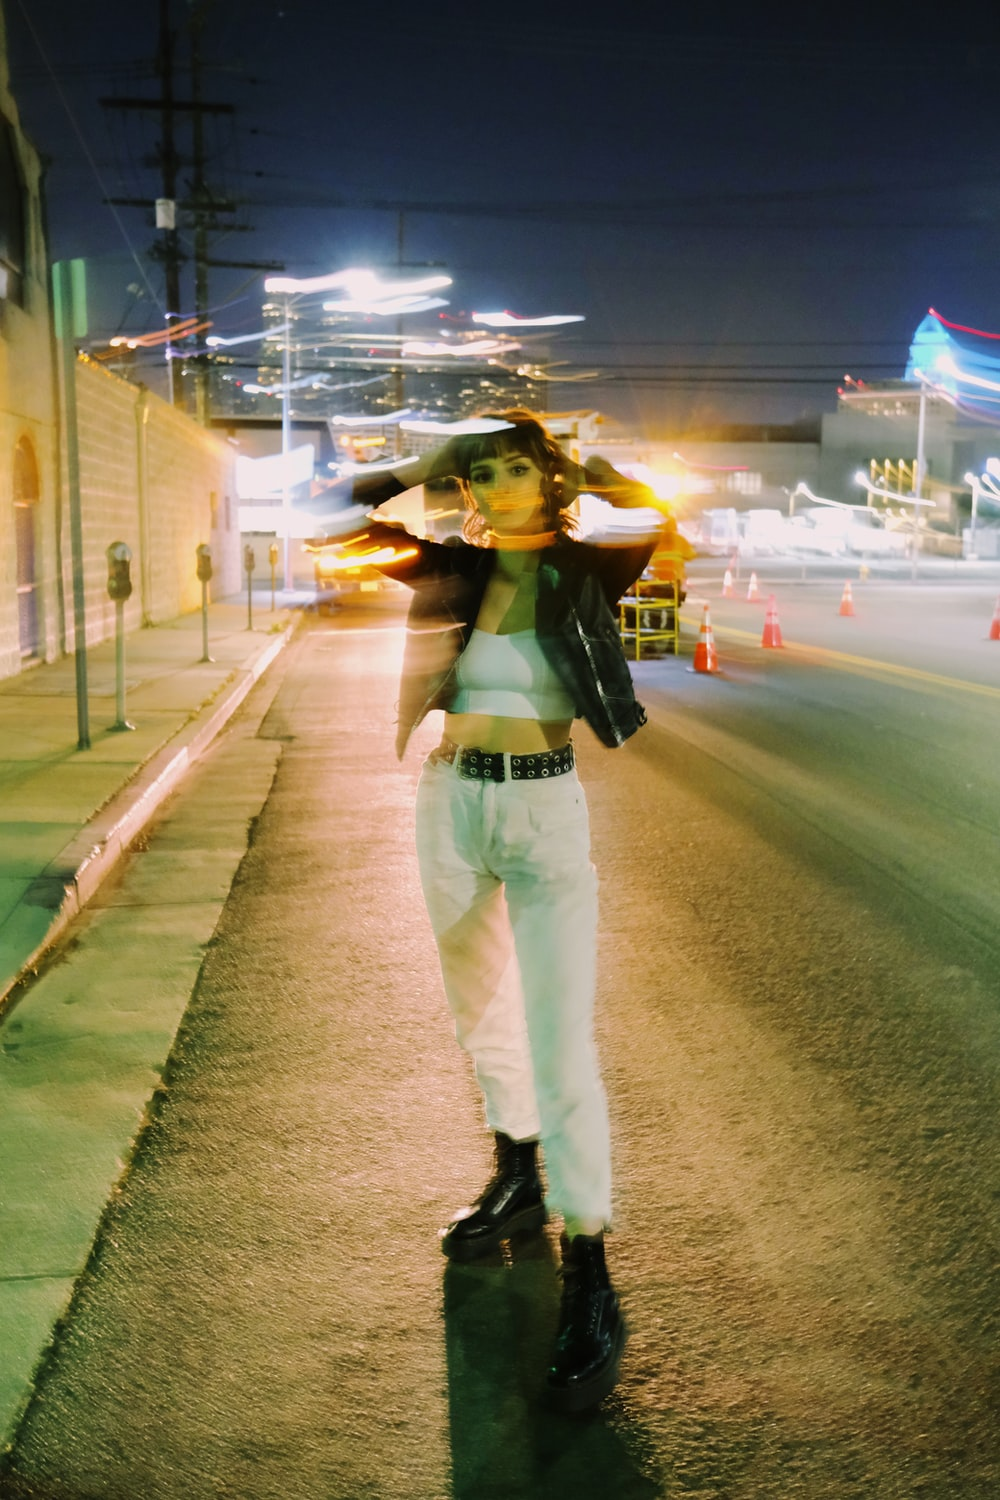 woman in green shirt and white pants standing on road during night time